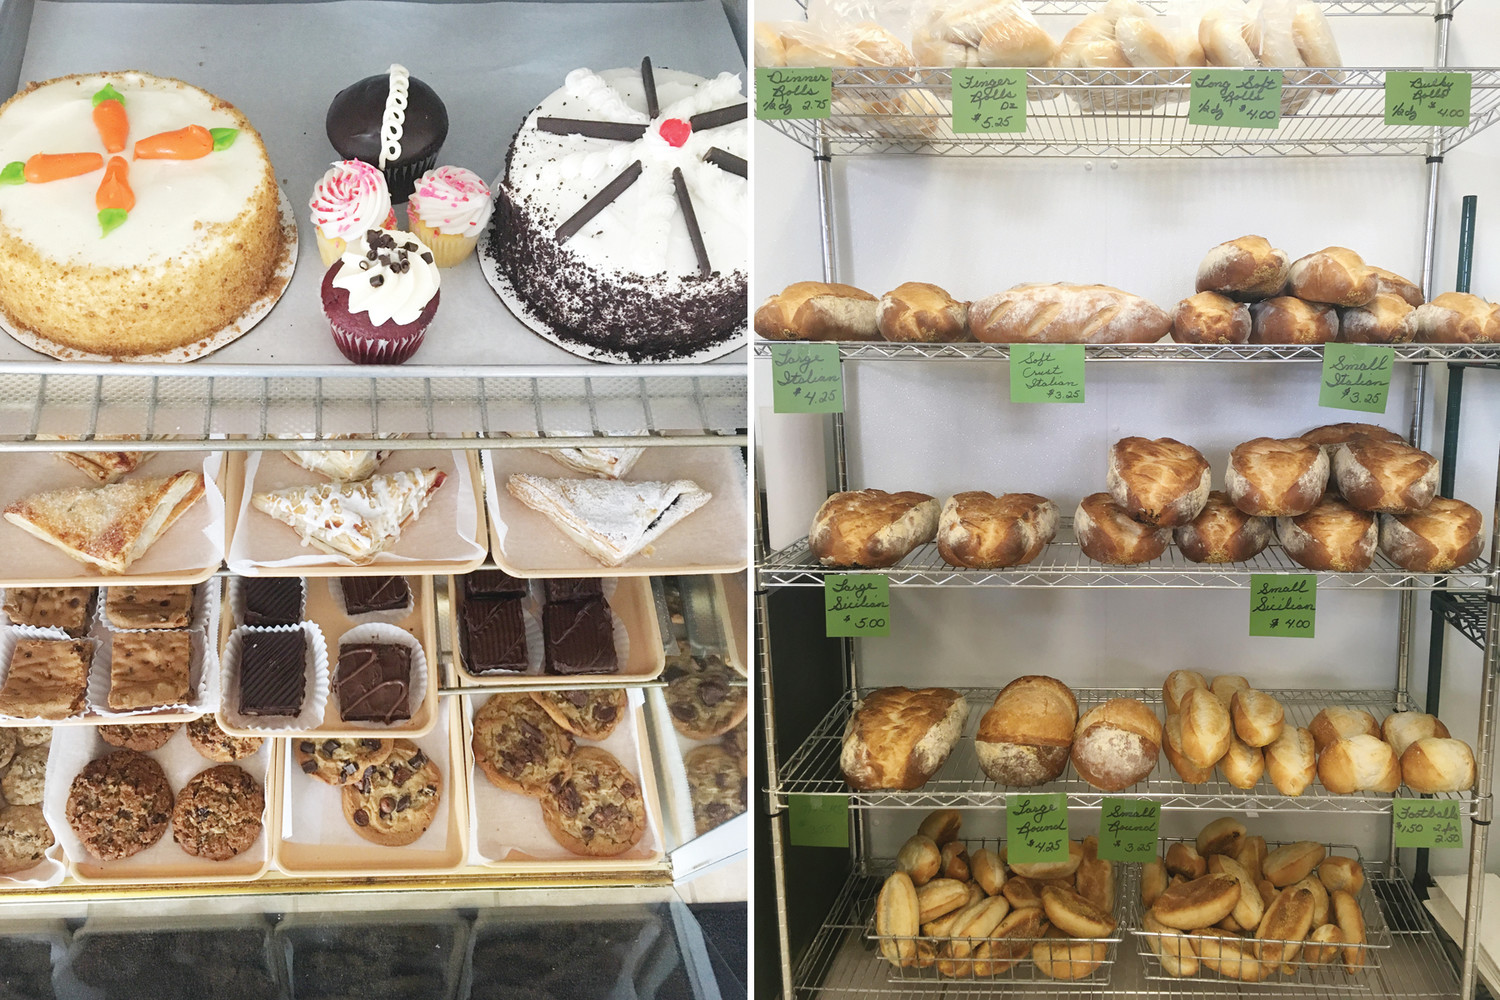 Juliana S Italian Bakery Home Baked Confections And Breads